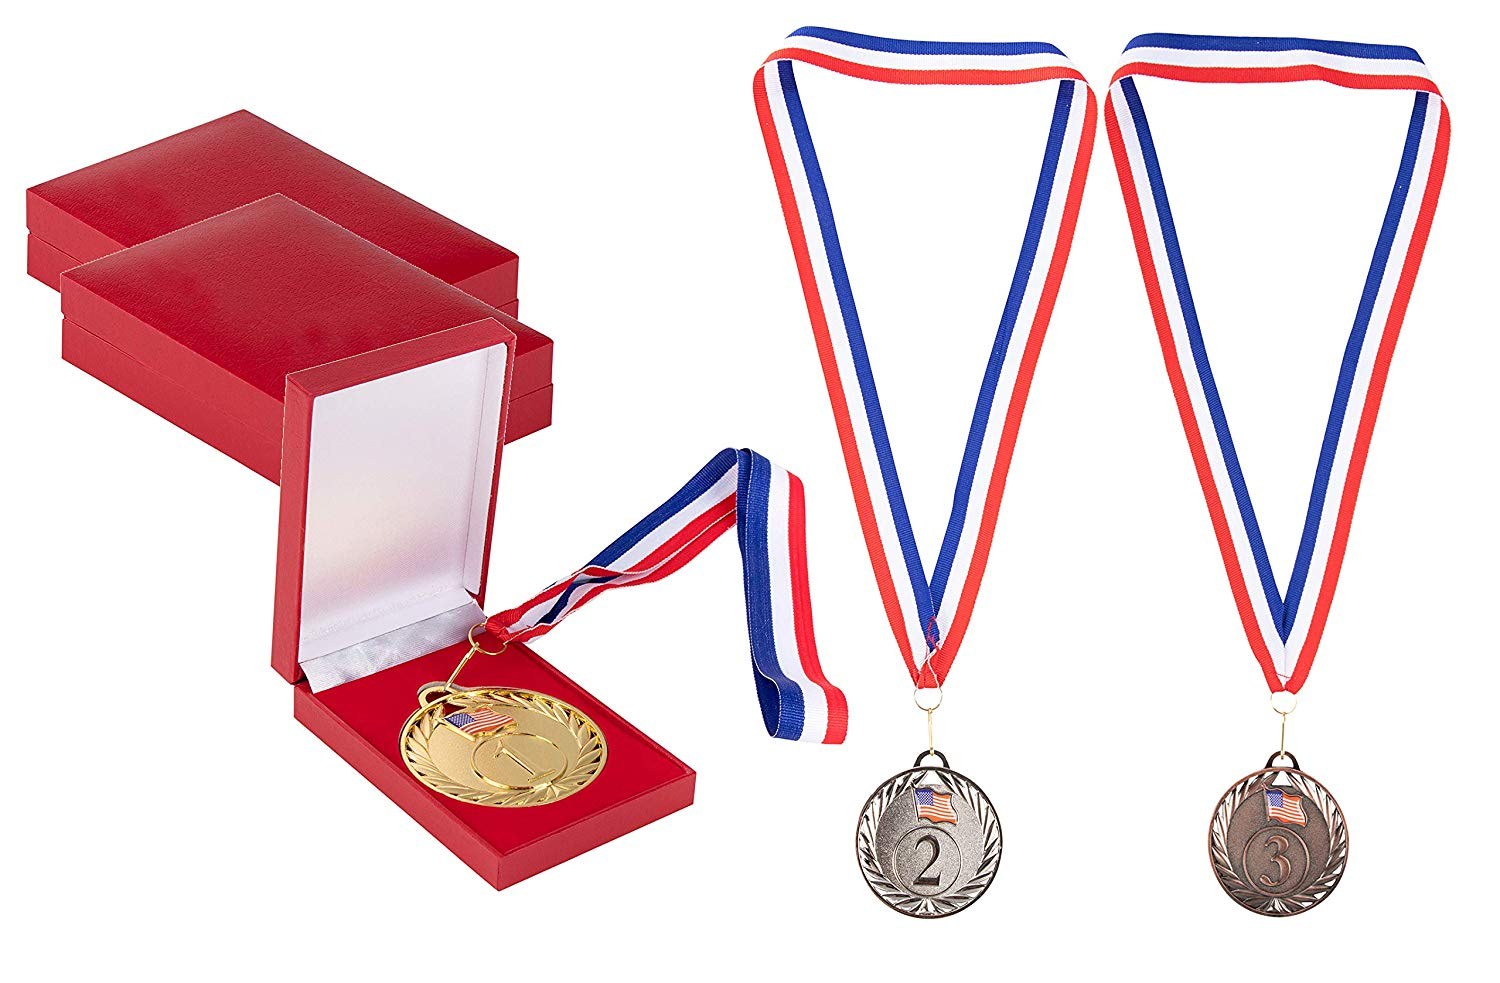 Gold silver bronze medals clipart vector royalty free library Juvale Gold Silver Bronze Medals with Red Cases - 3-Piece 1st 2nd 3rd Metal  Olympic Style Winner Awards, Perfect for Sports, Competitions, Party ... vector royalty free library